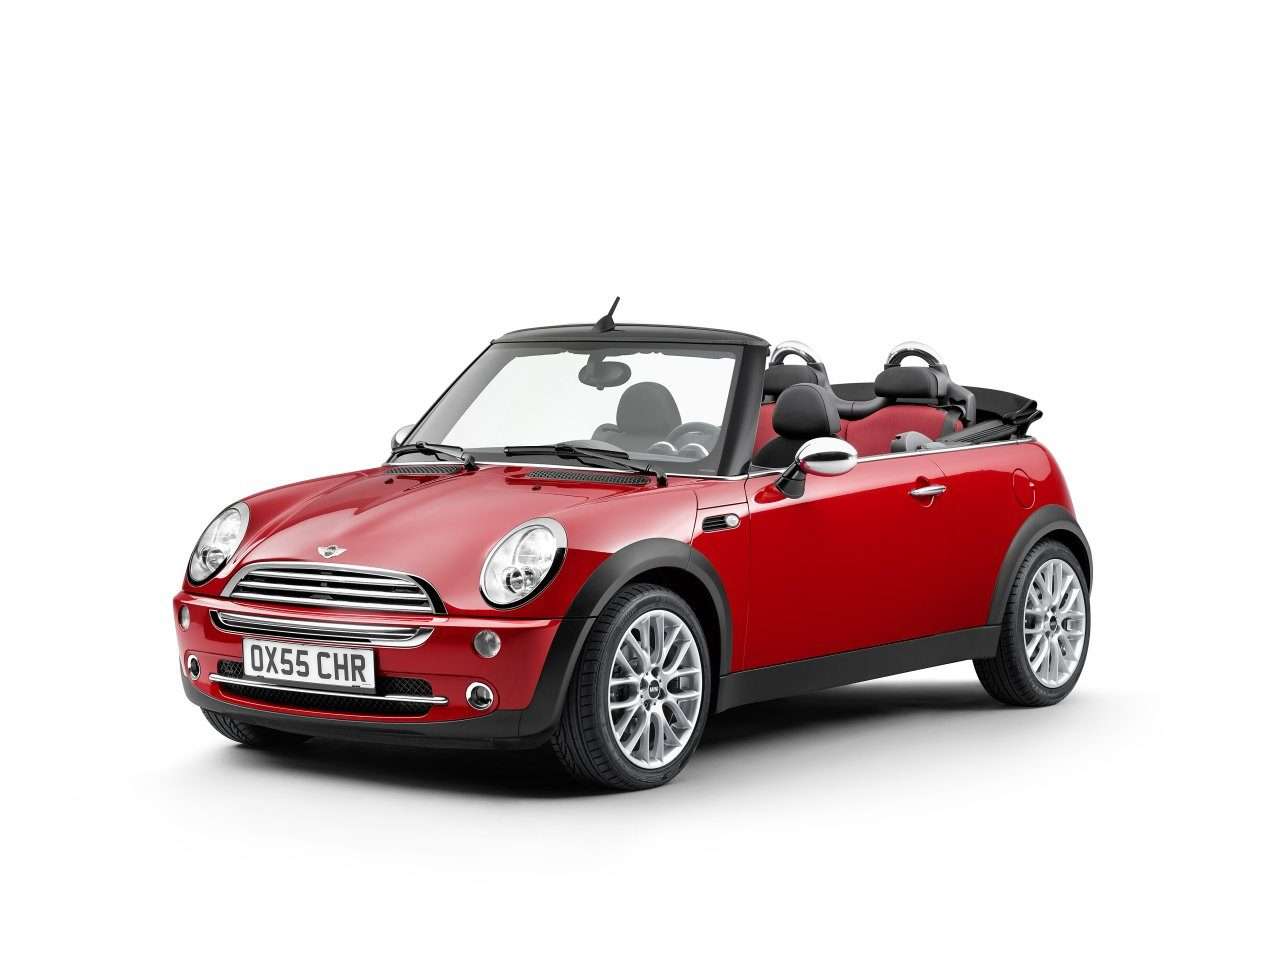 foto mini cooper cabrio 2016 mini cooper cabrio 2016 37. Black Bedroom Furniture Sets. Home Design Ideas